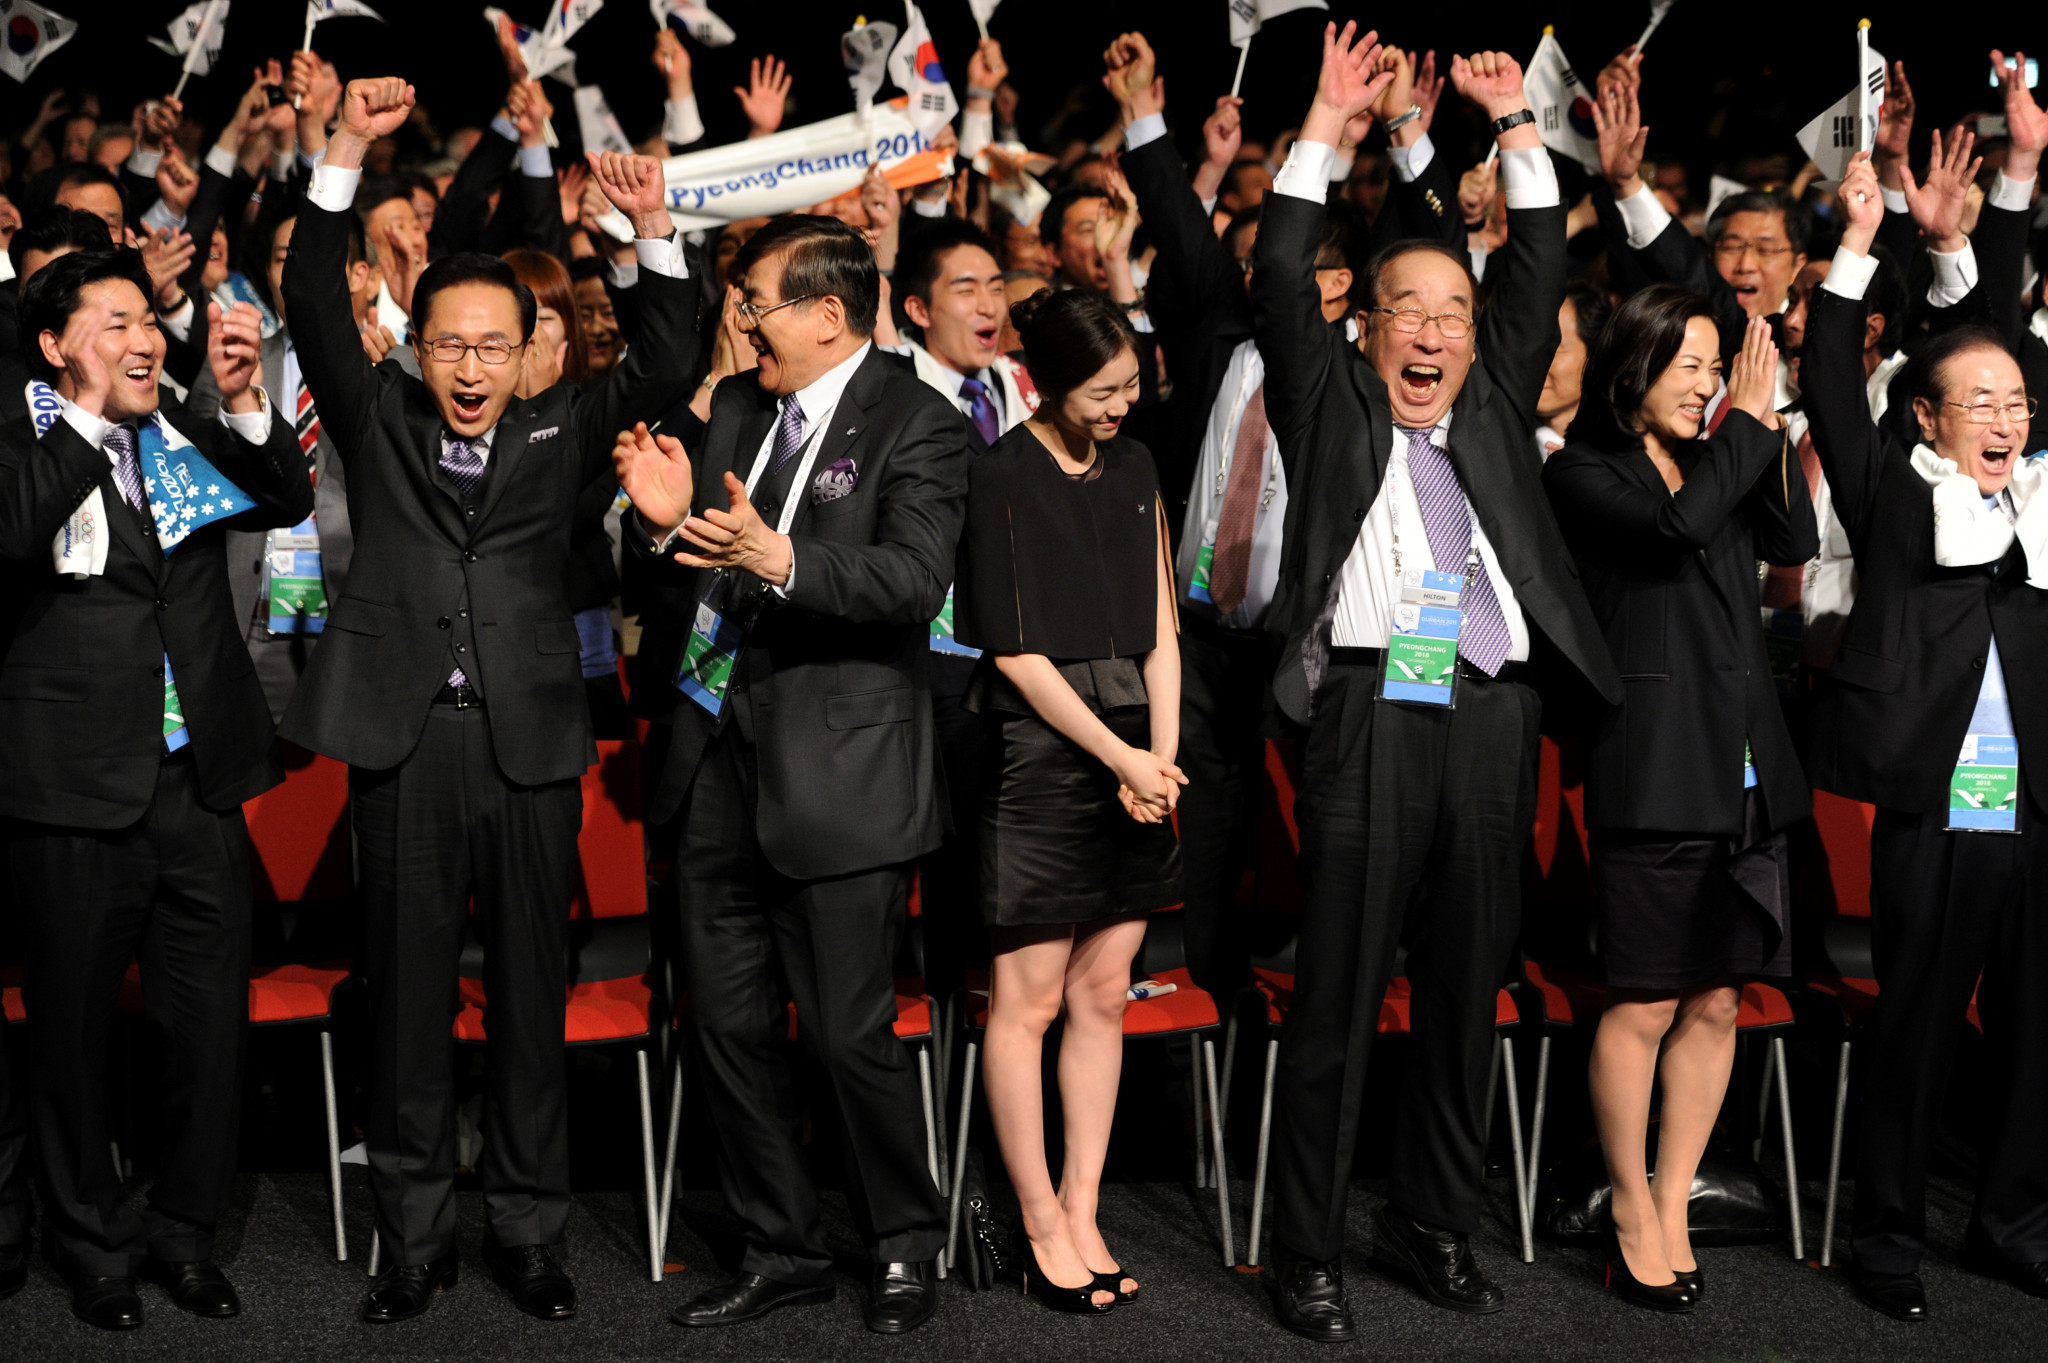 Yang Ho Cho, third left, celebrates in Durban in 2011 after it was announced that Pyeongchang had been awarded the 2018 Winter Olympic and Paralympic Games ©Getty Images